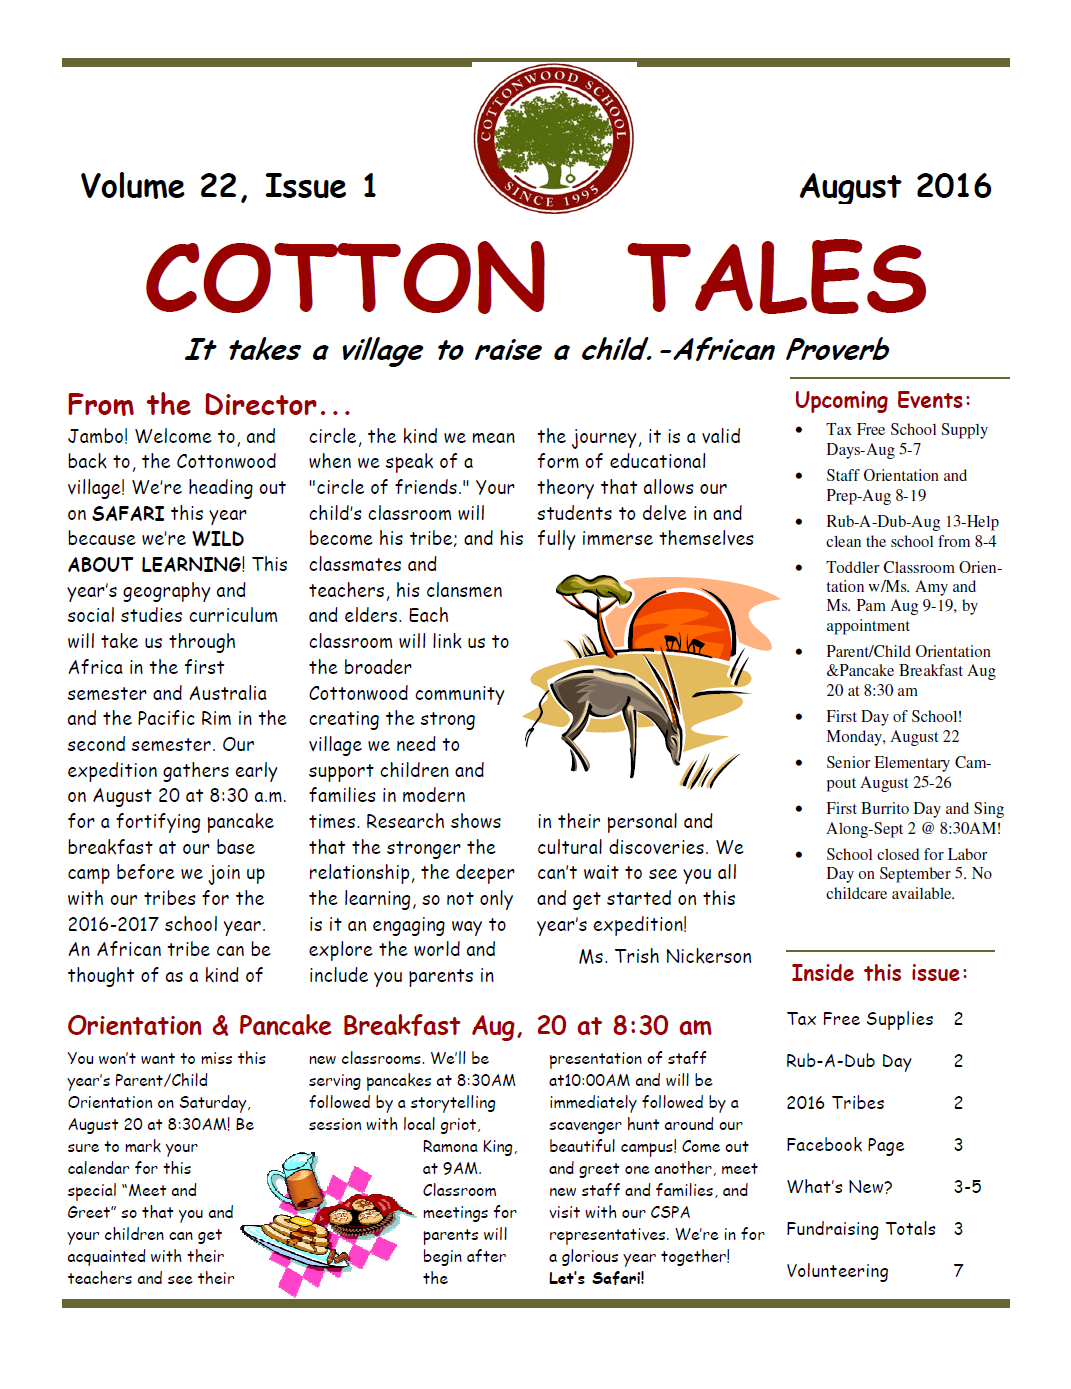 August 2016 Cotton Tales Newsletter